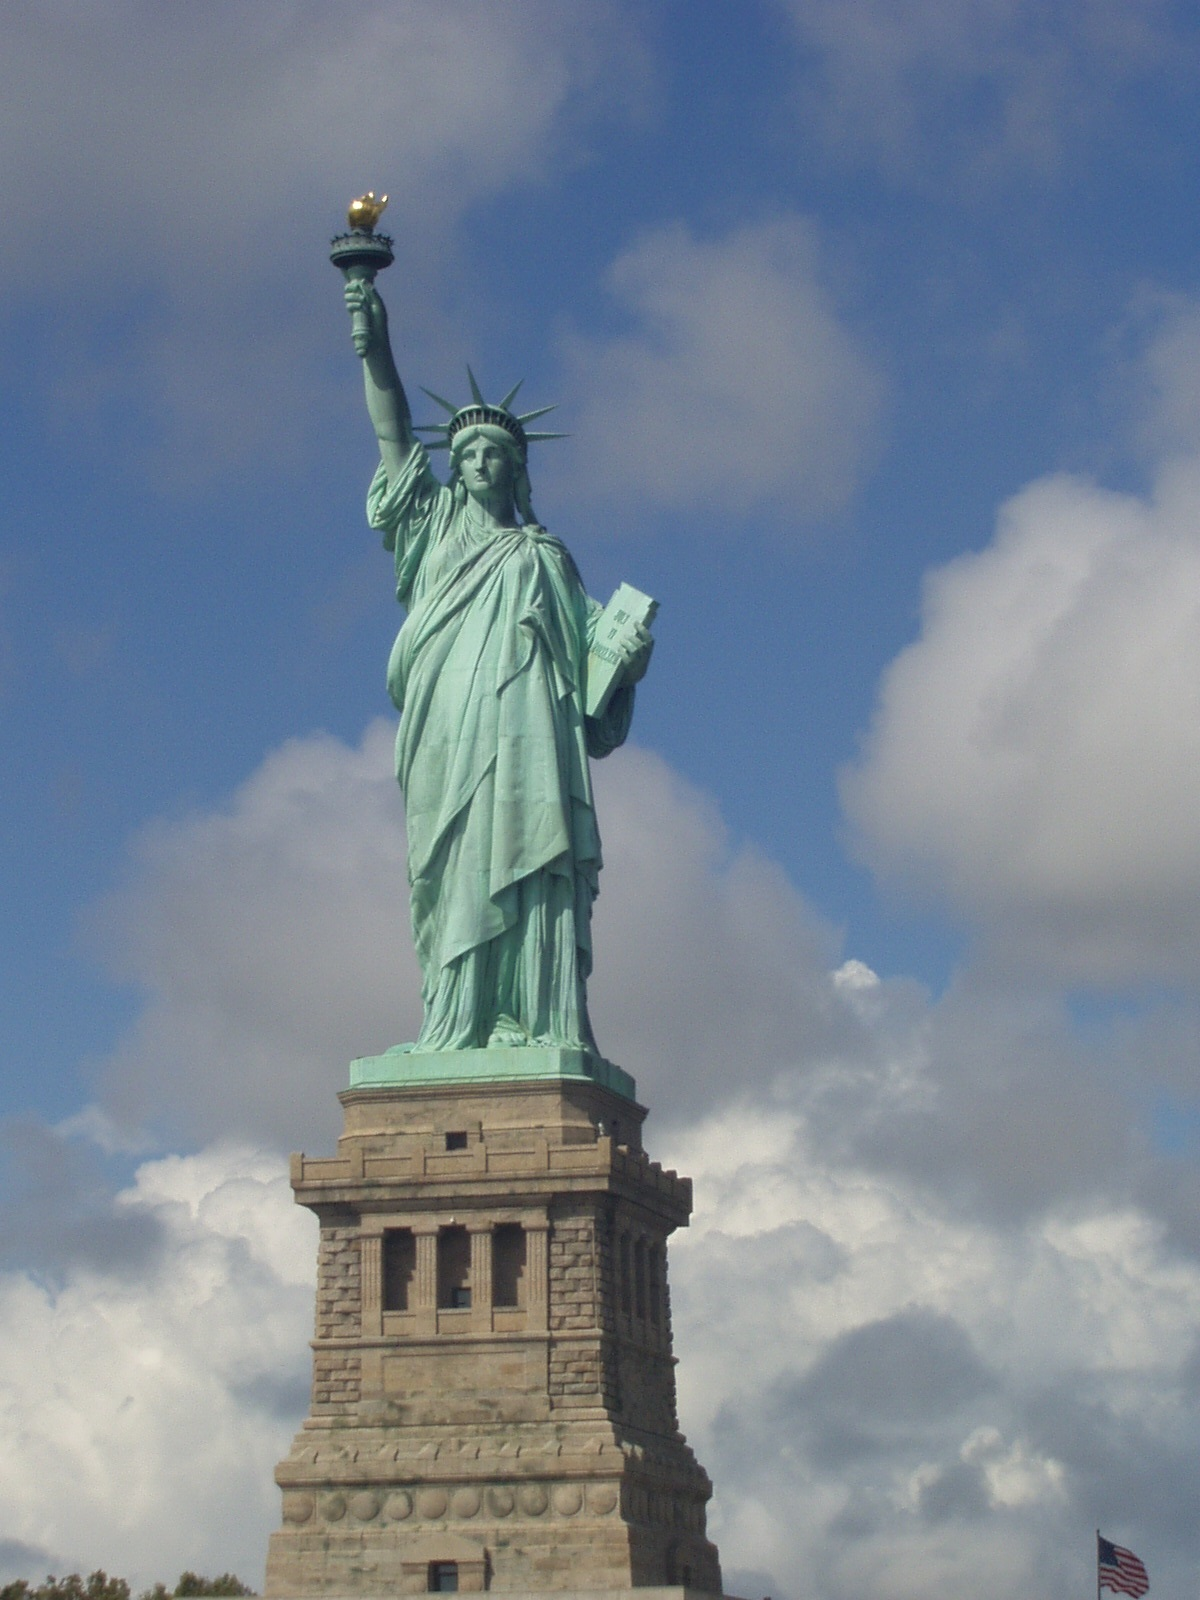 The Statue of Liberty: Symbol of Liberty Under God